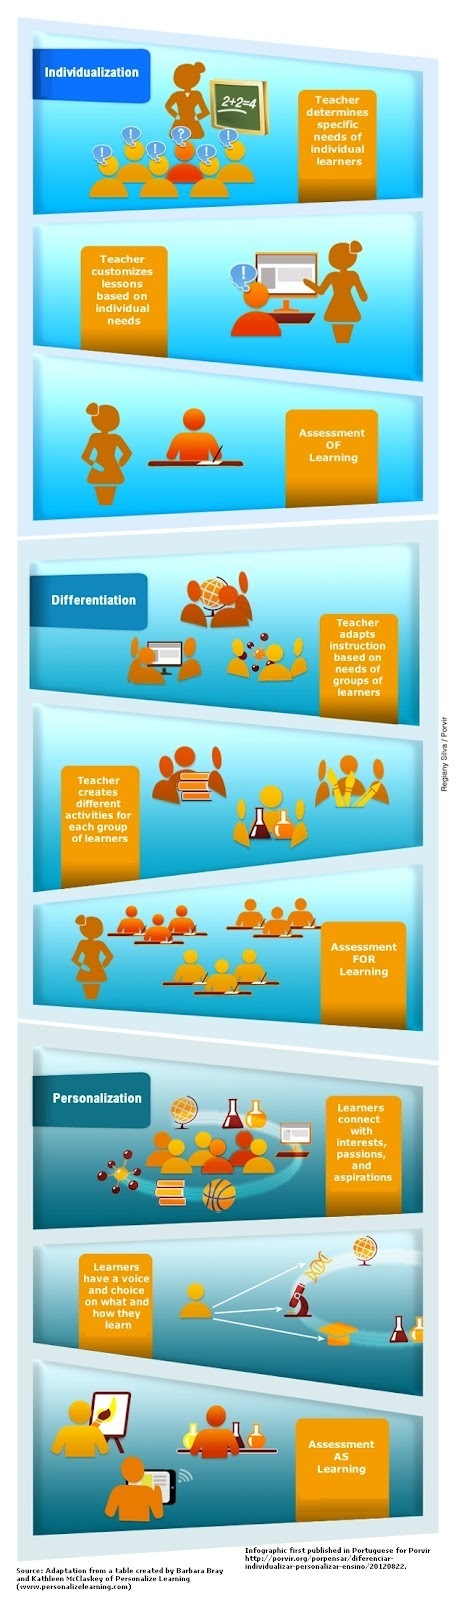 PLinfographic.jpg (456x1600 pixels) | Doorbraakproject onderwijs en ict | Scoop.it